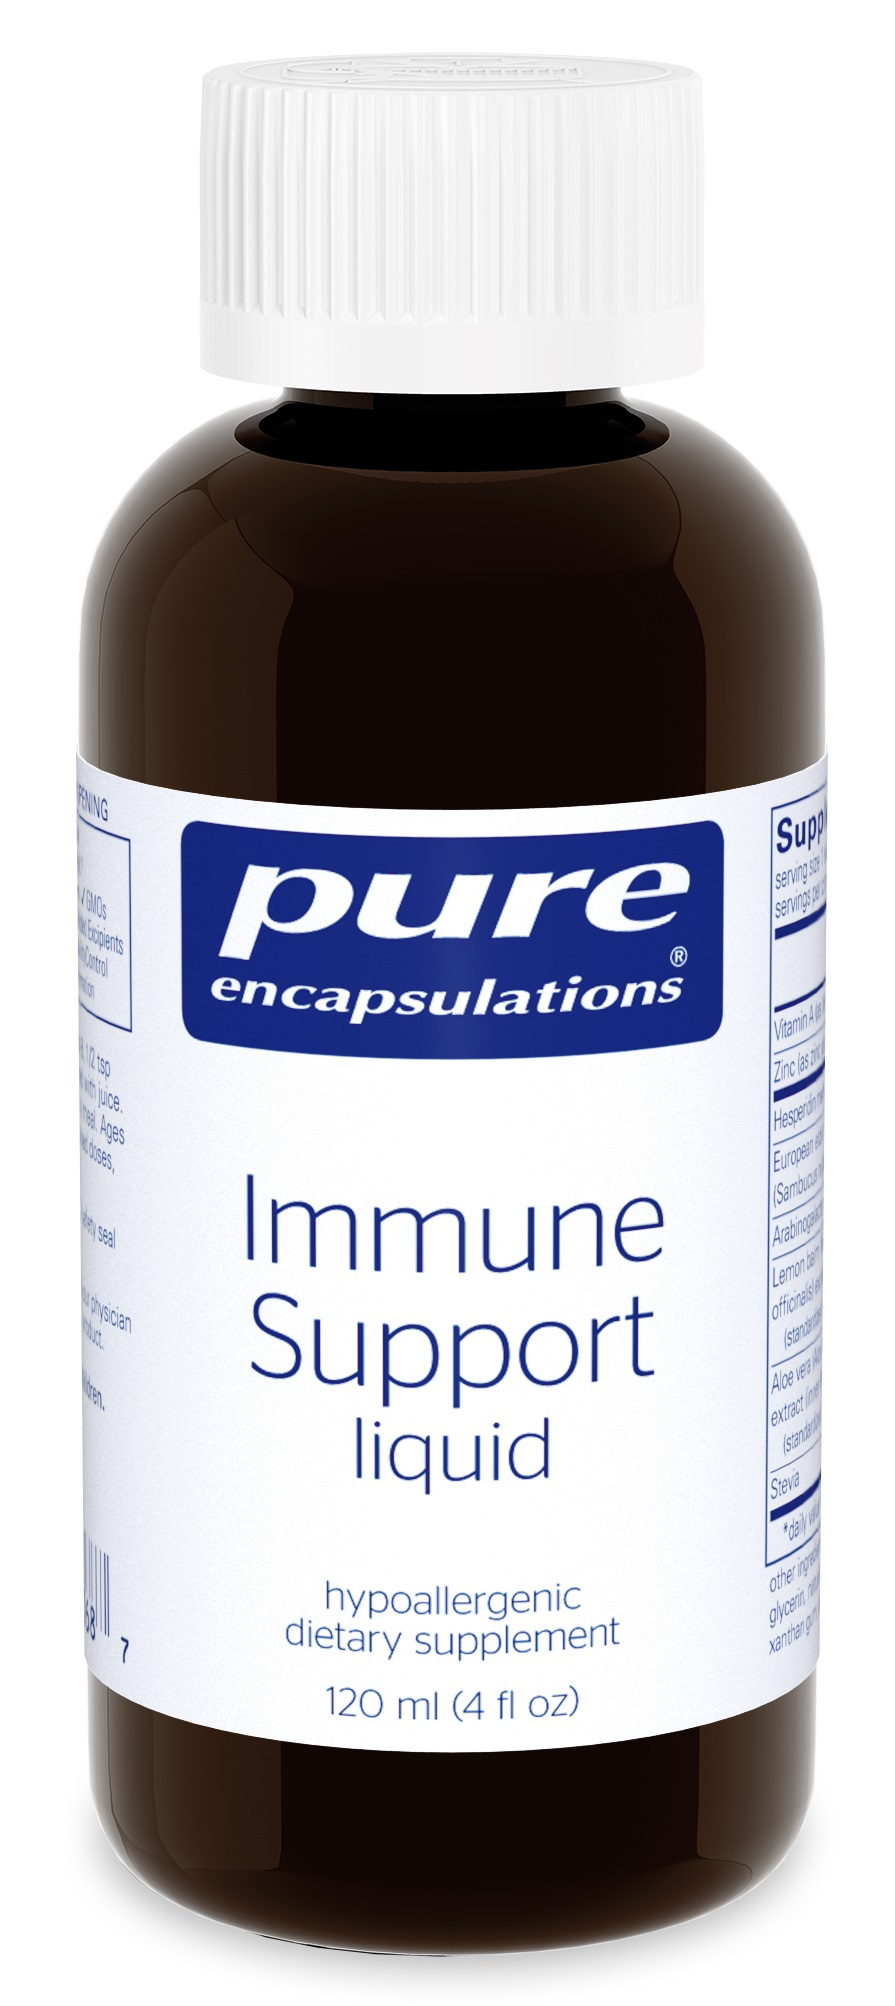 Pure Encapsulations Immune Support liquid*